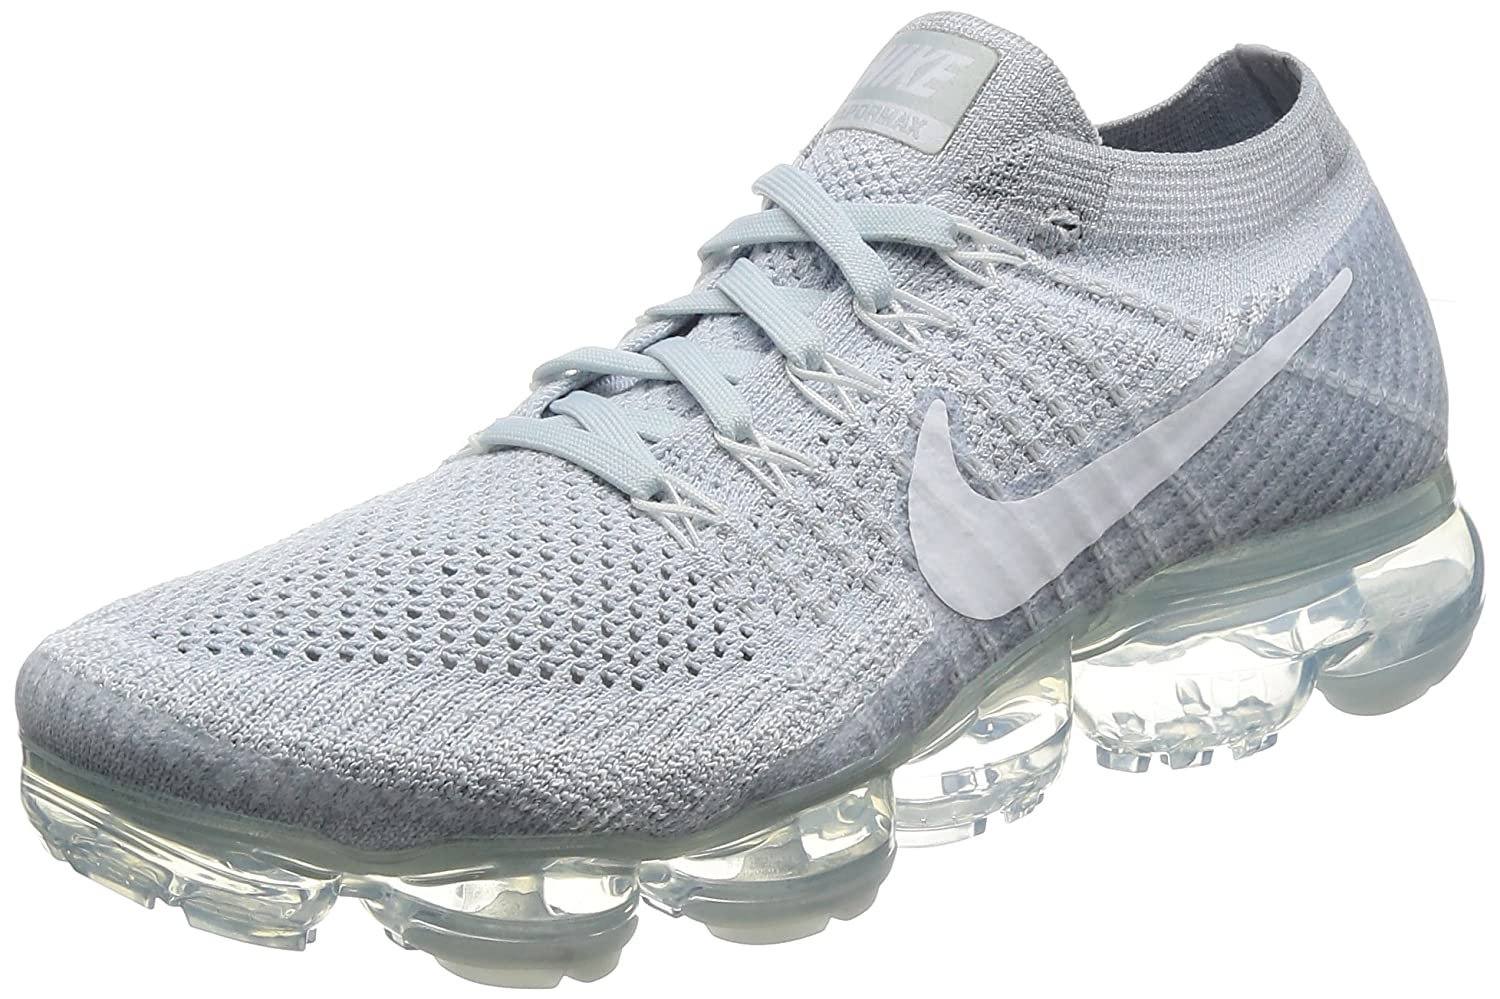 24f7e99068 Amazon.com | Men's Nike Air Vapormax Flyknit Running Shoe | Fashion Sneakers